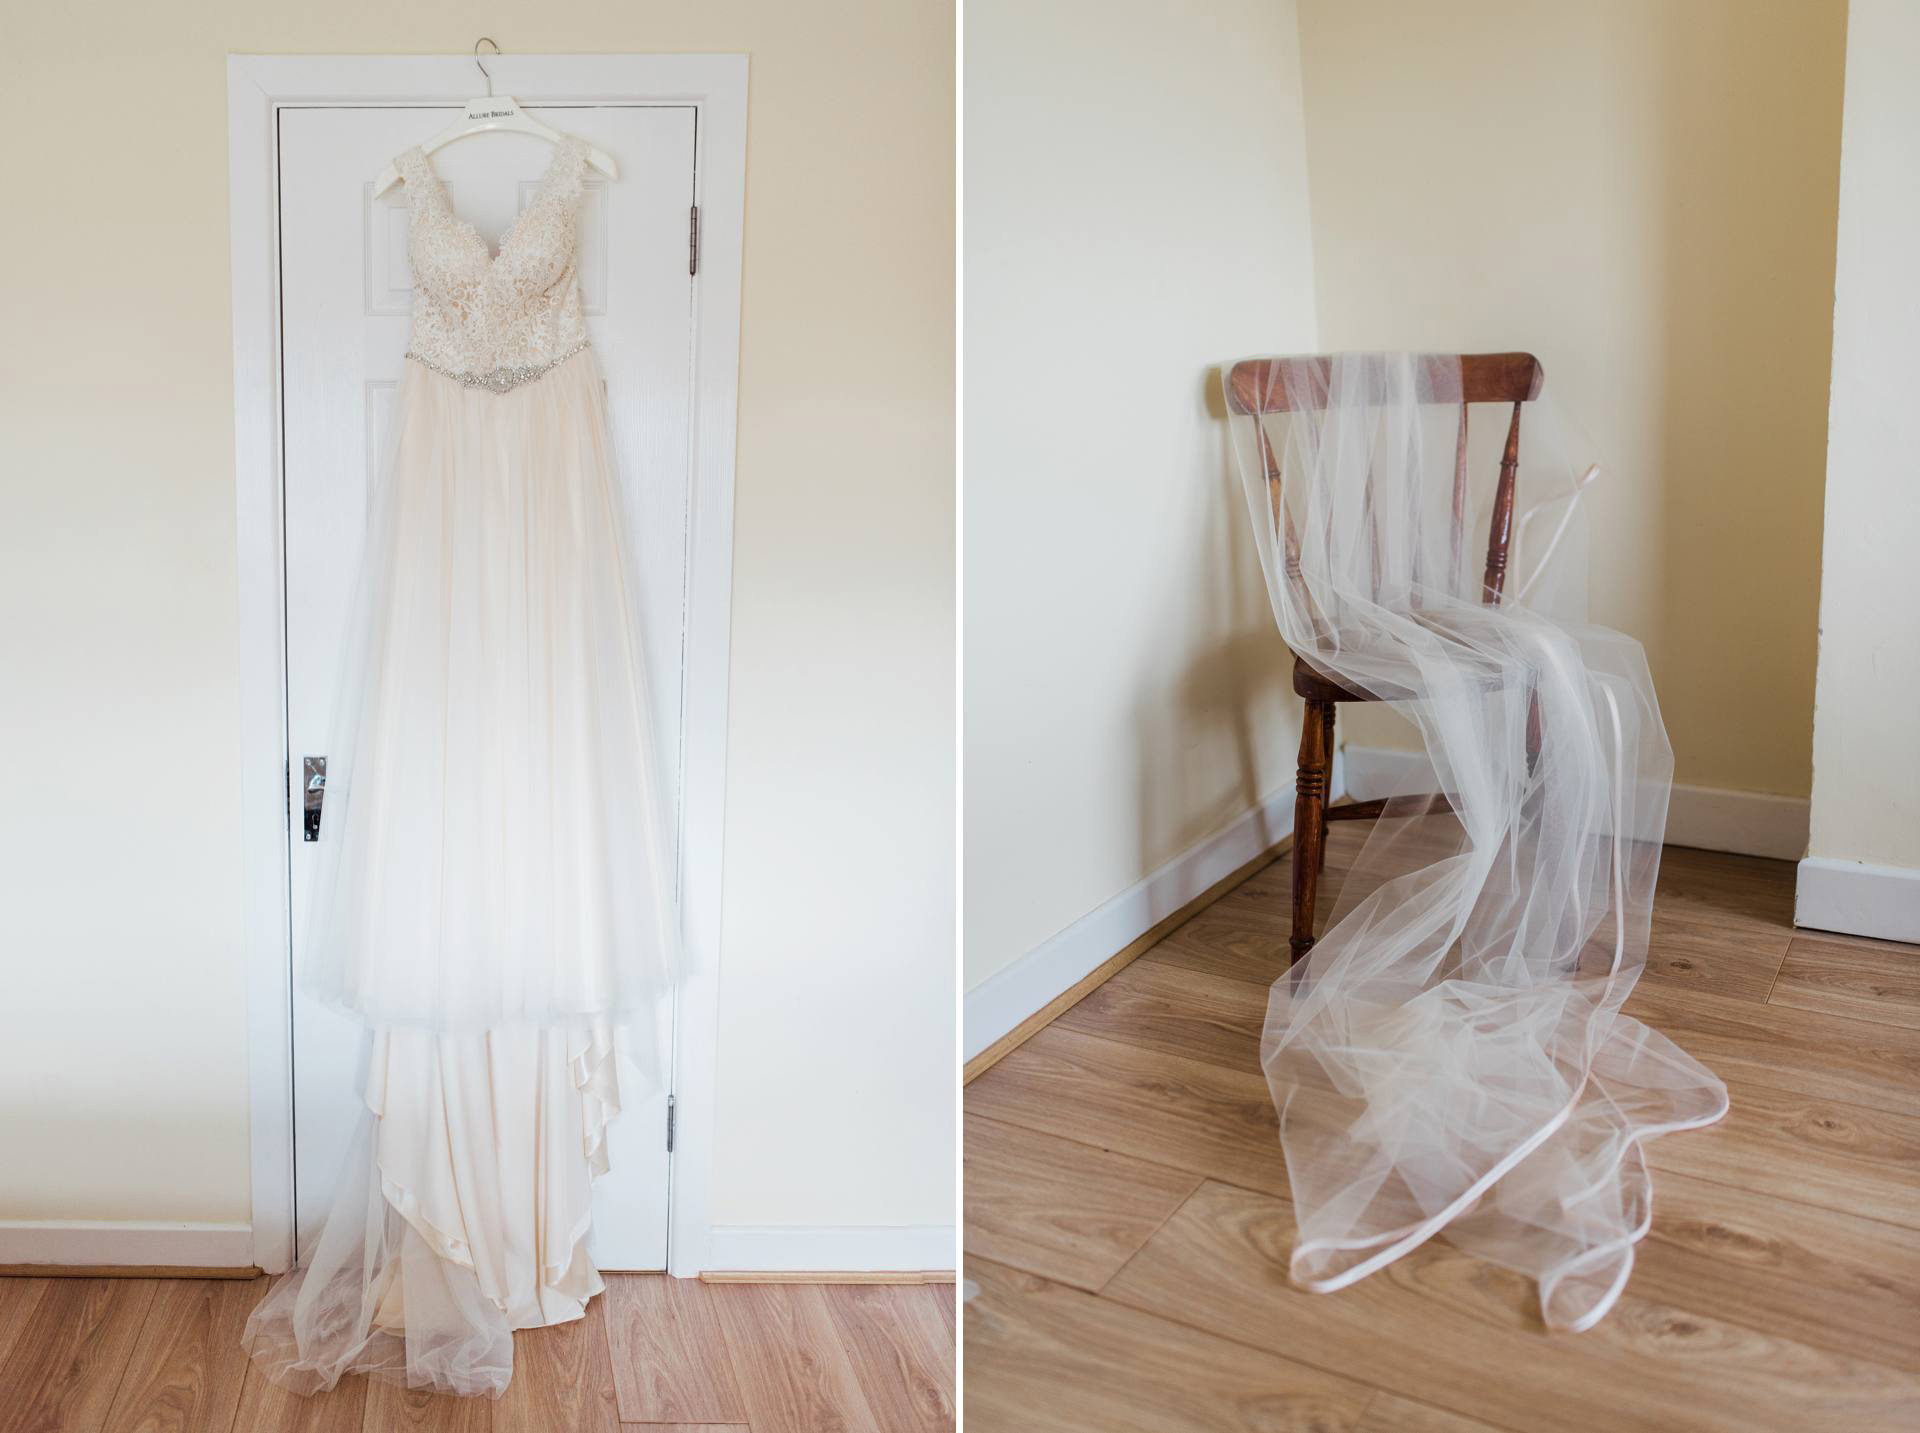 detail of wedding dress hanging from a door and a veil draped over a chair